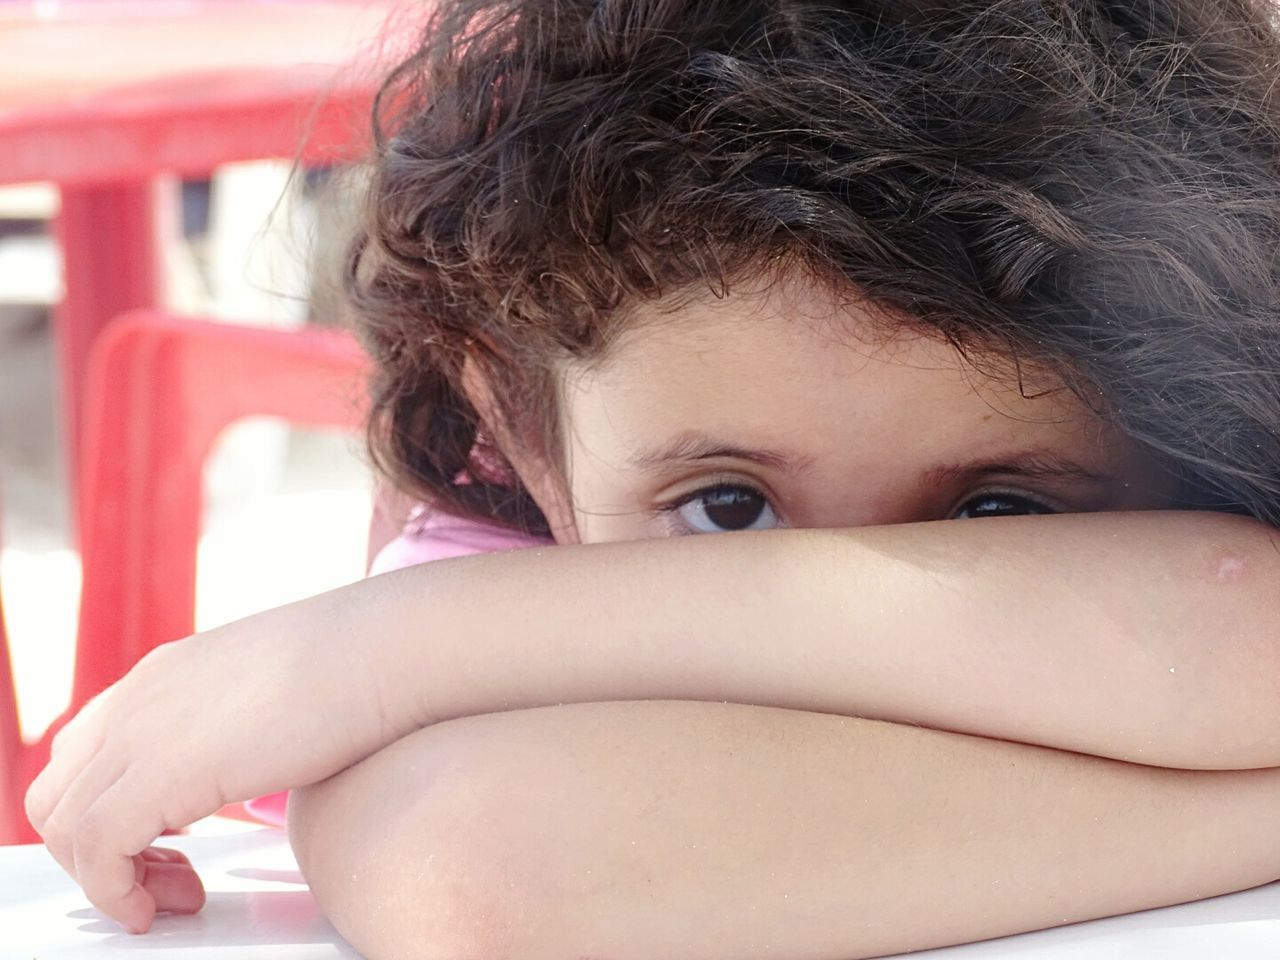 Portrait Of Girl Covering Face With Arms While Leaning On Table